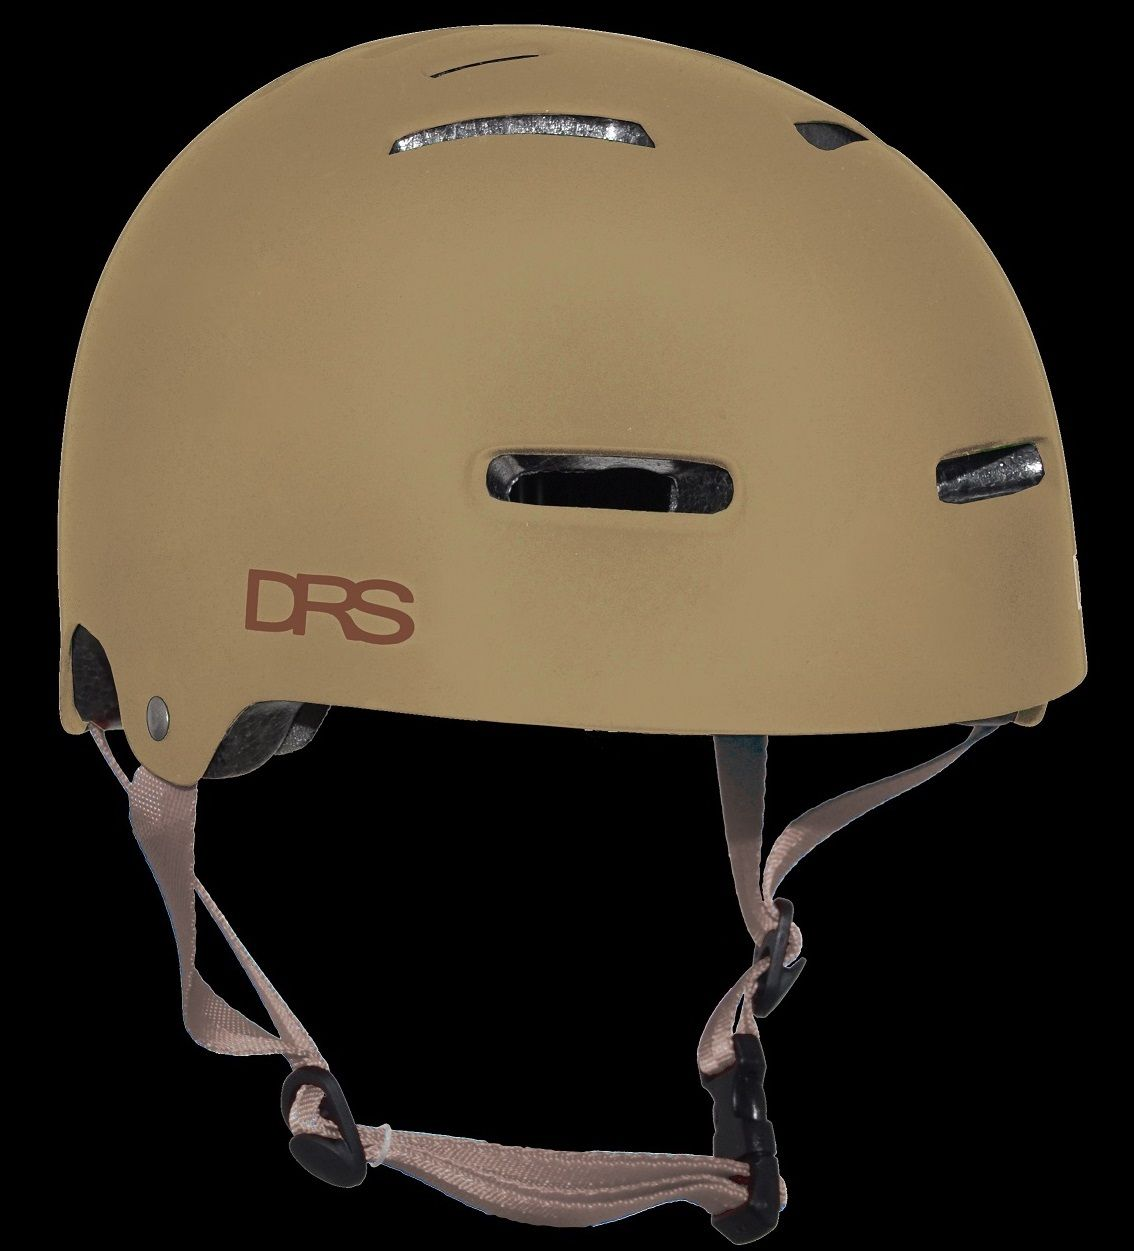 DRS SKATE SCOOTER BMX APPROVED ADJUSTABLE HELMET - KHAKI - Kick Push Skate and Scooter Store